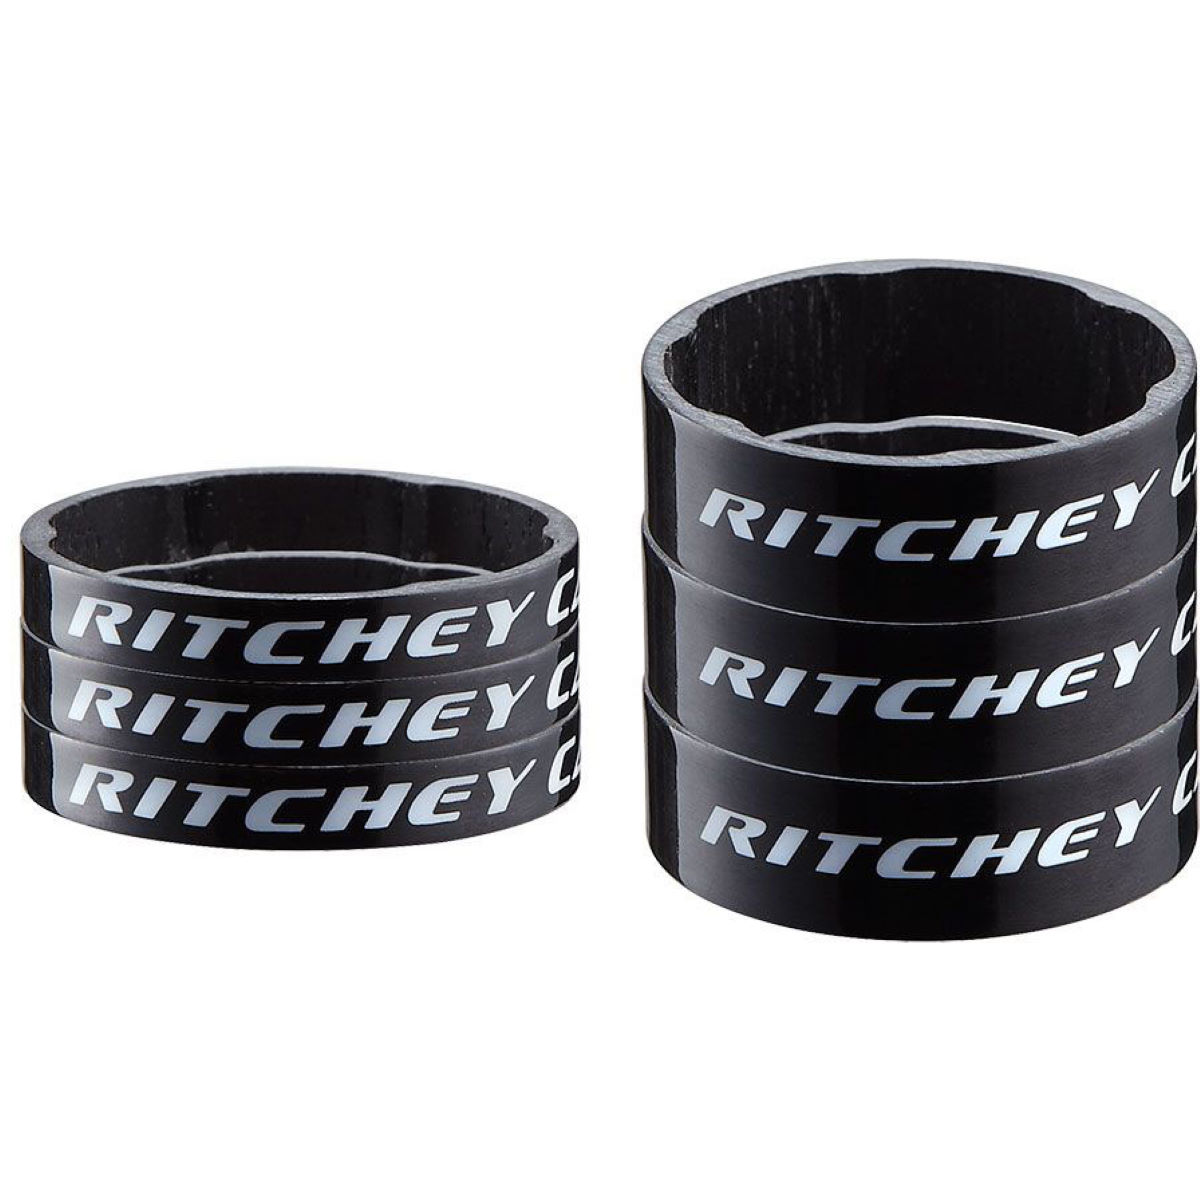 Ritchey Ritchey WCS Carbon Headset Spacer 2020   Headset Spacers